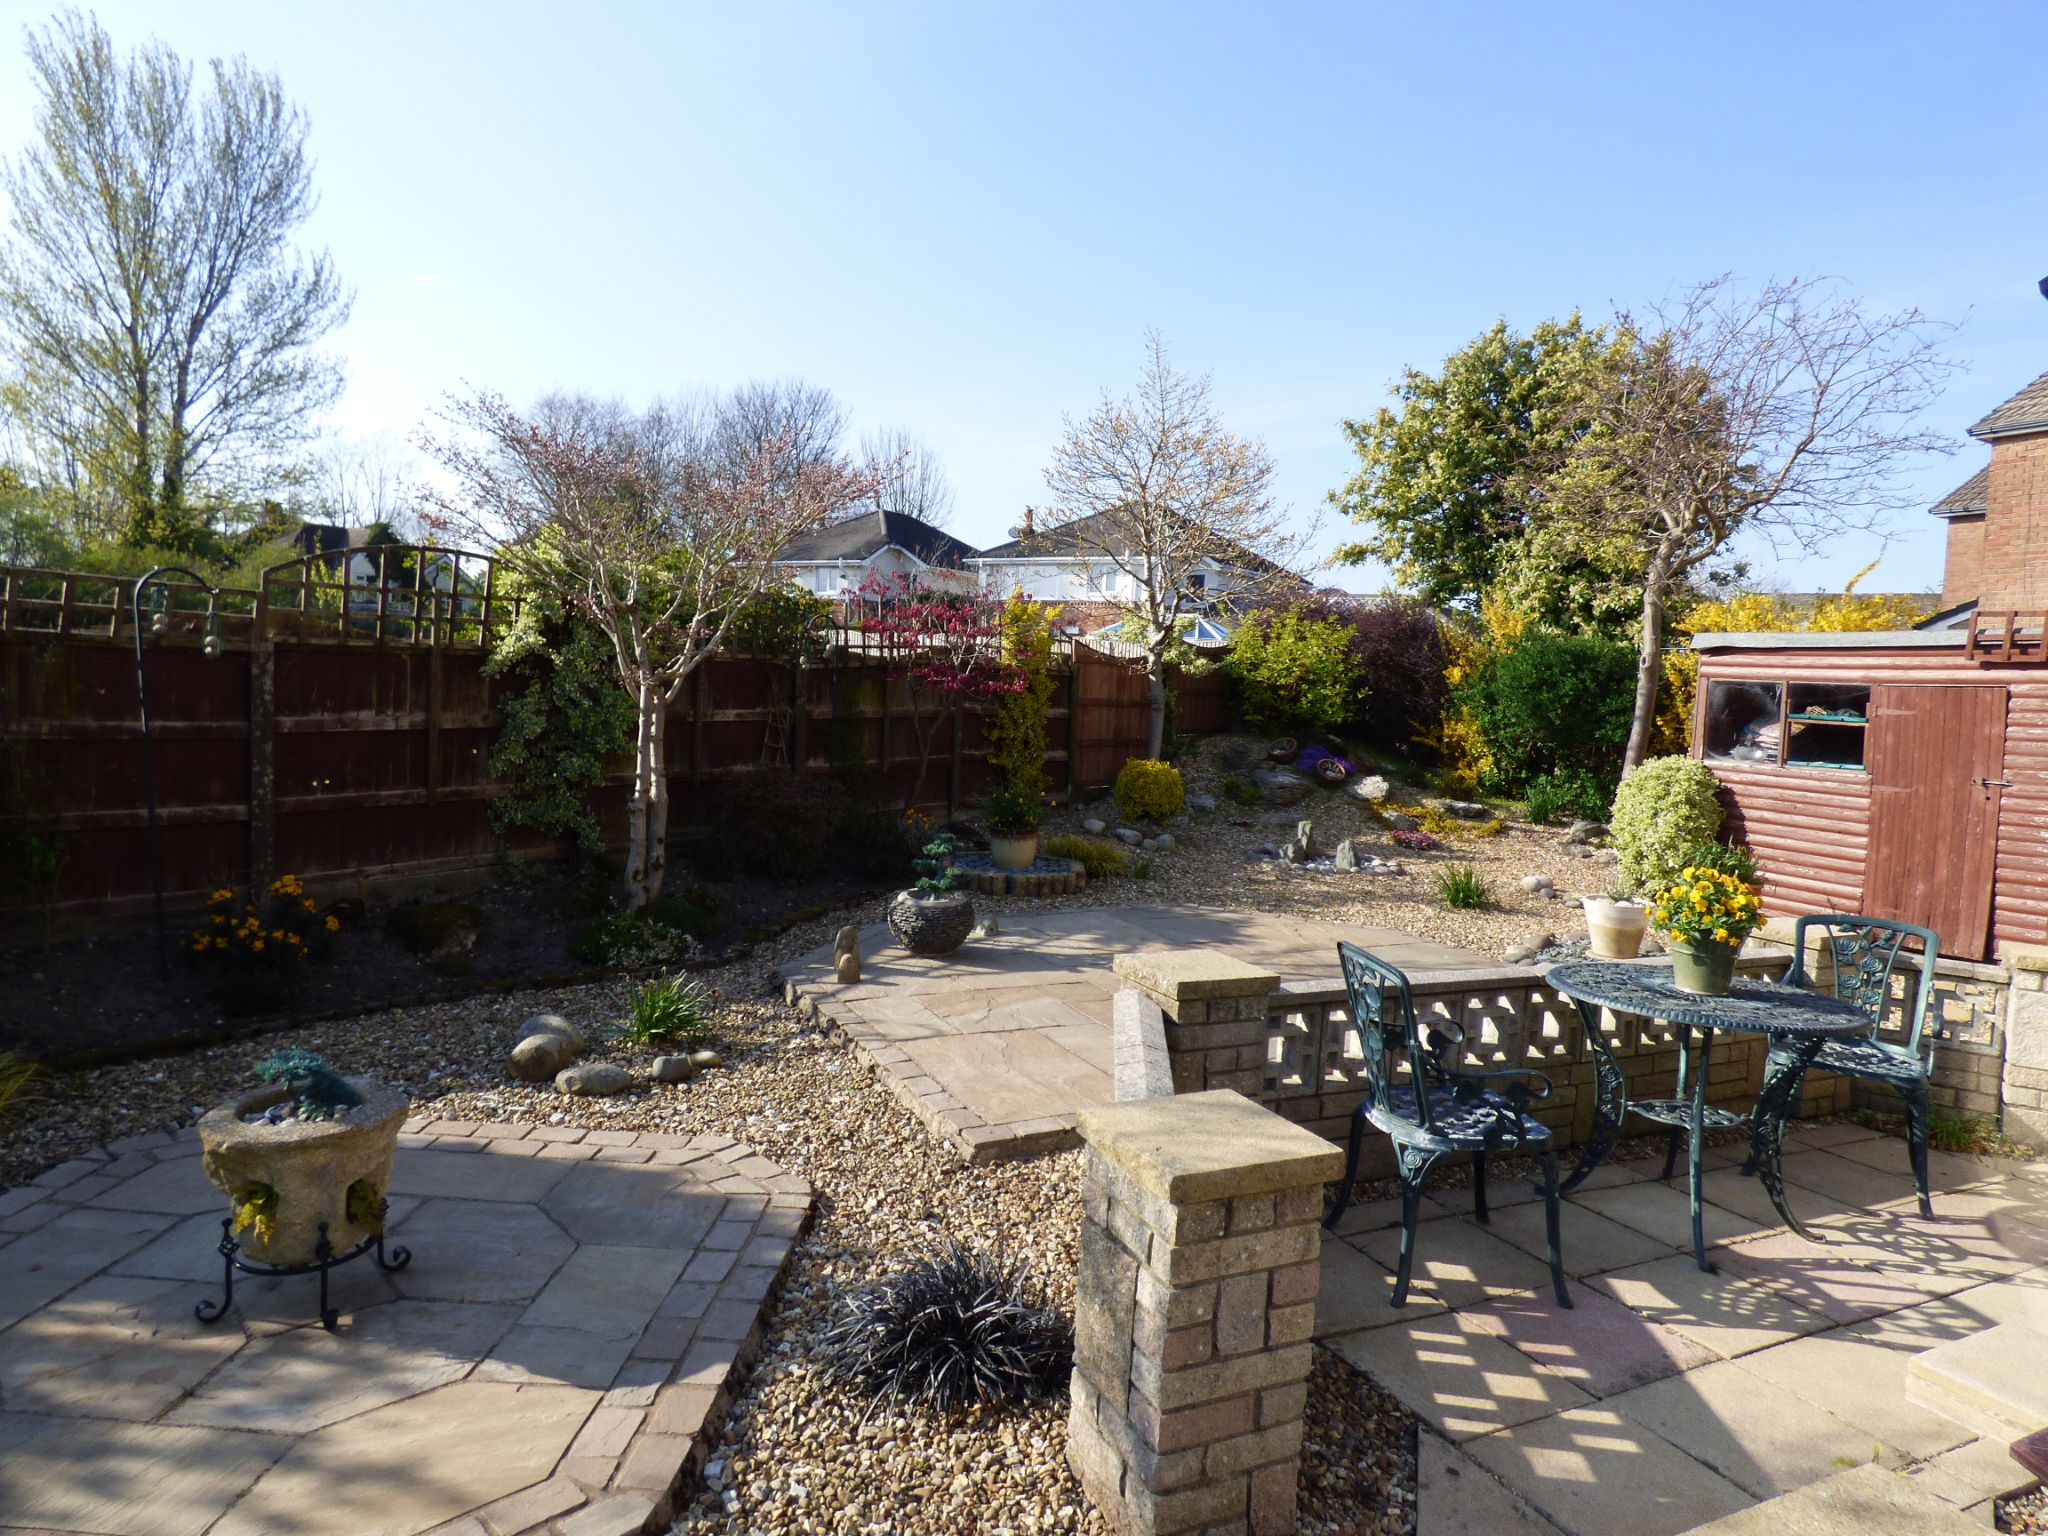 3 Bedroom Detached House For Sale - Rear Garden View 1